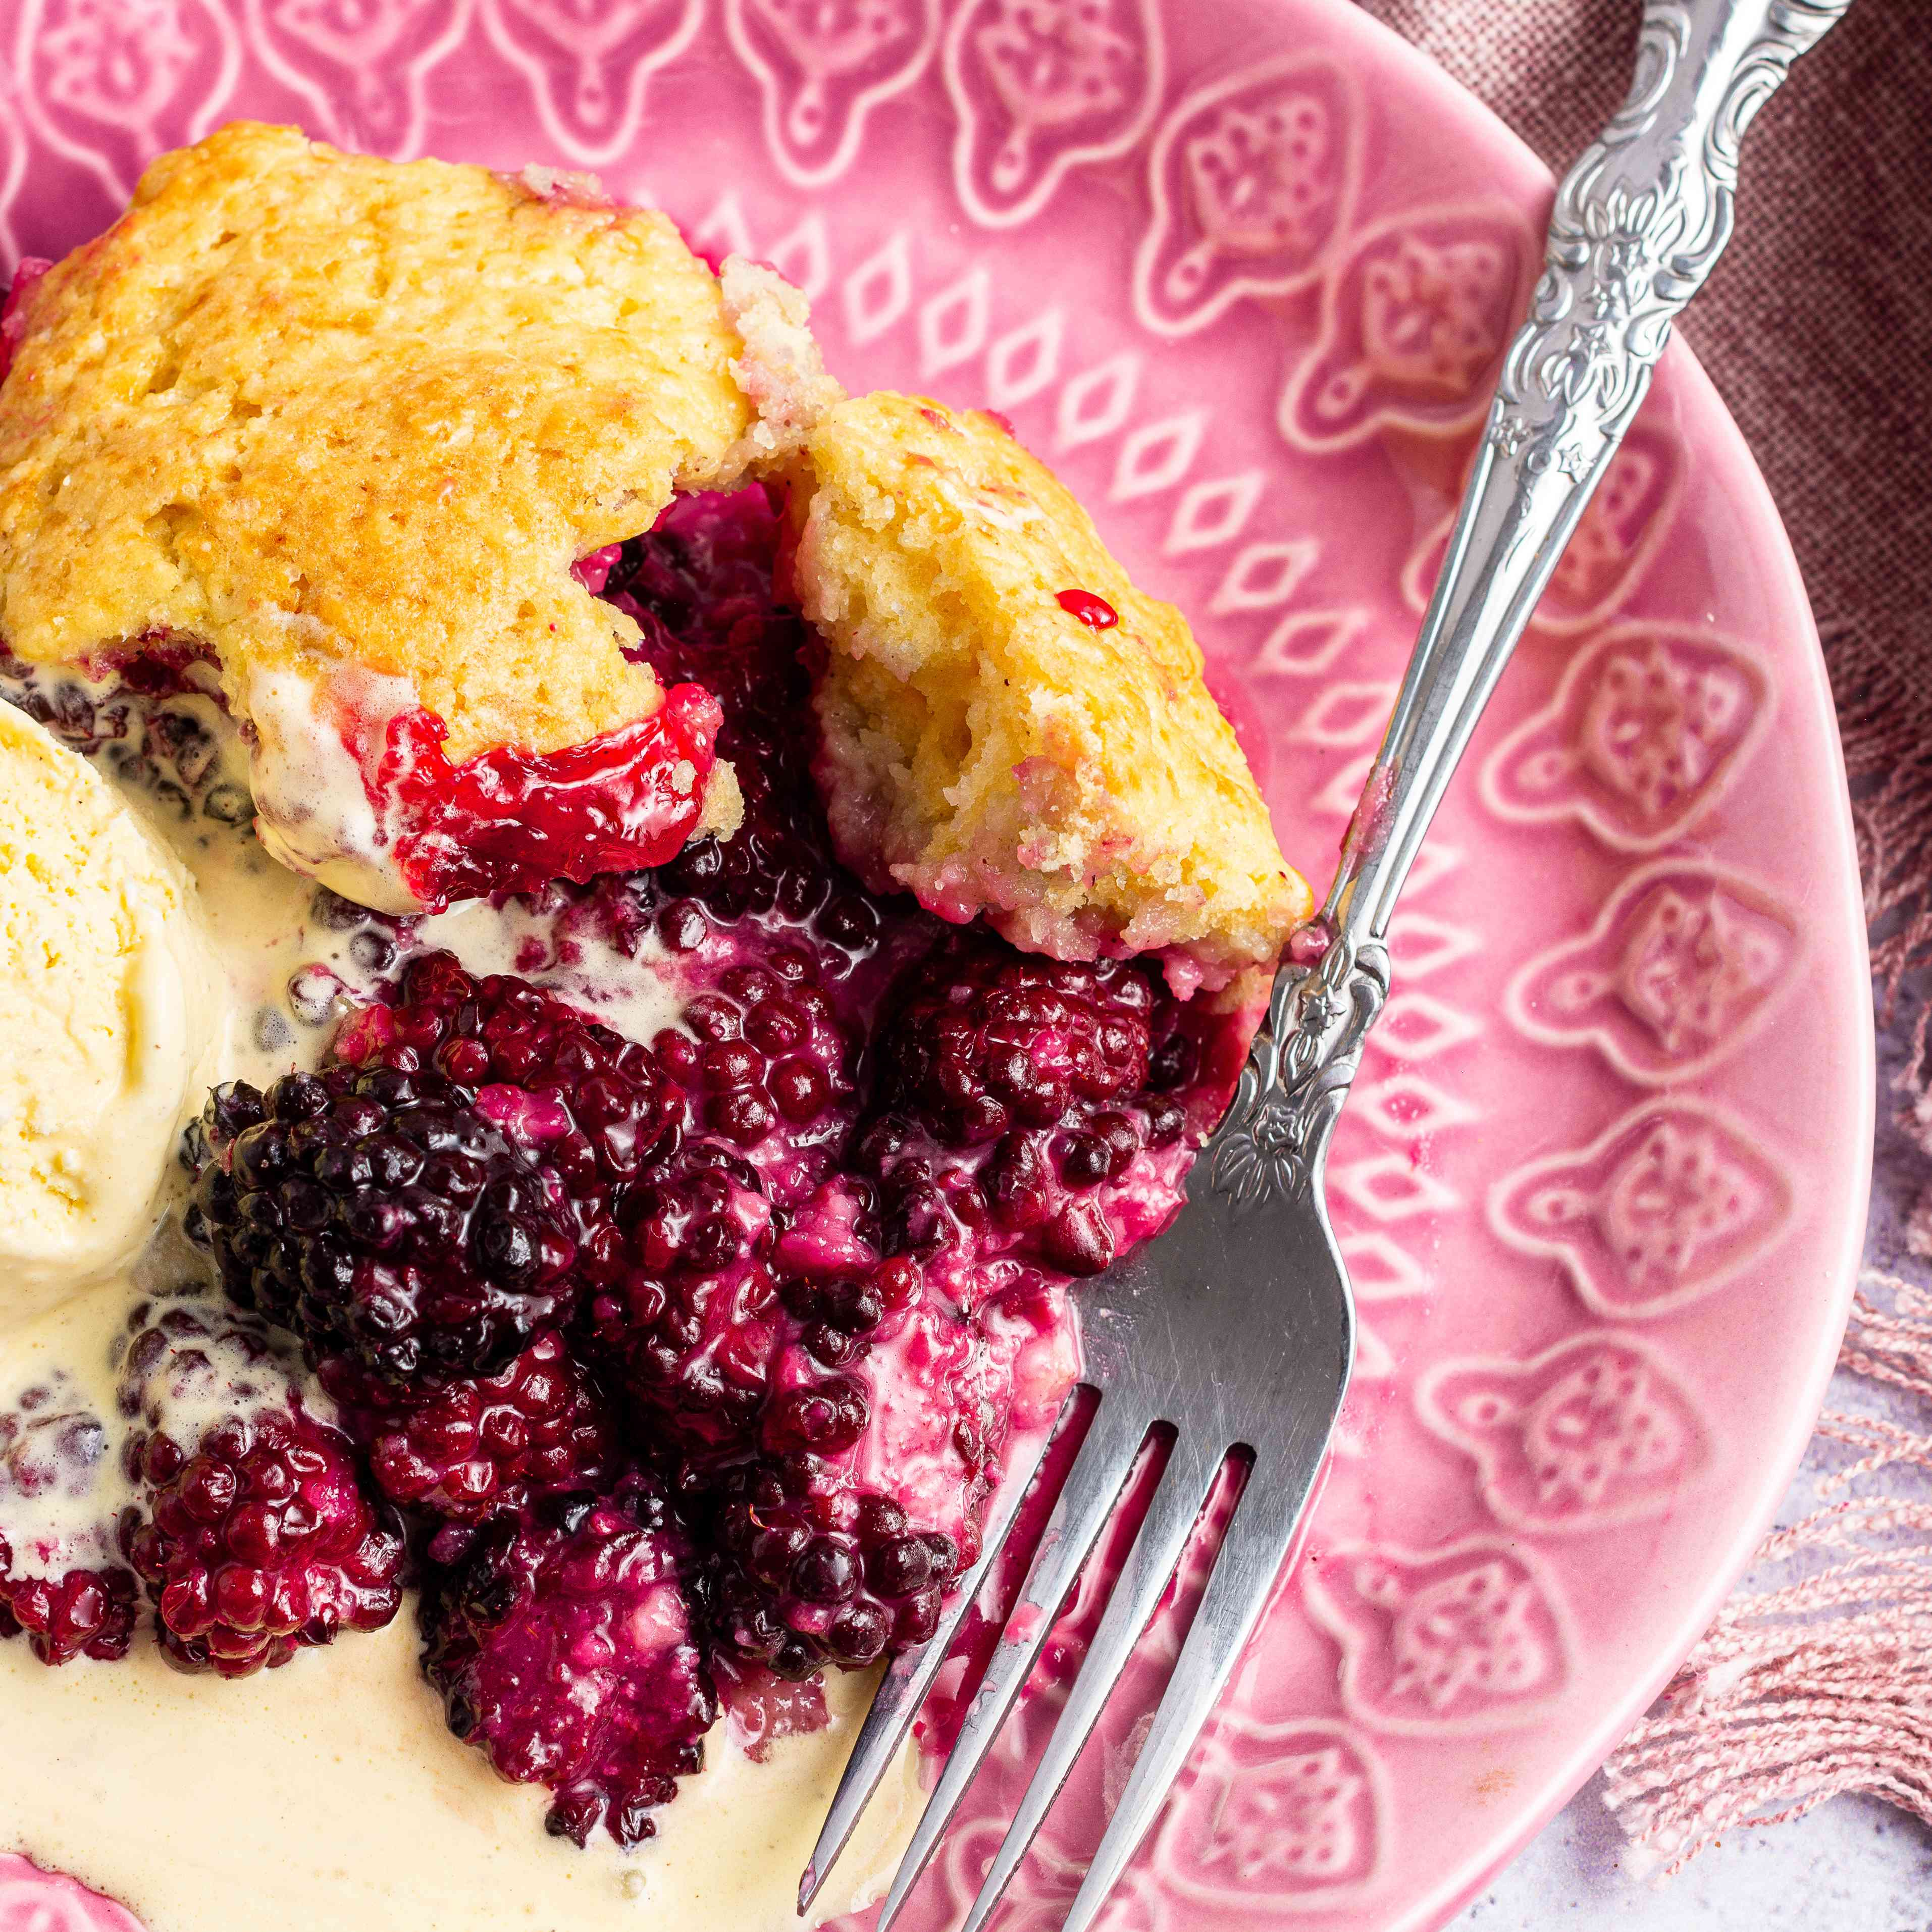 A plate with a piece of easy blackberry cobbler and a scoop of ice cream.